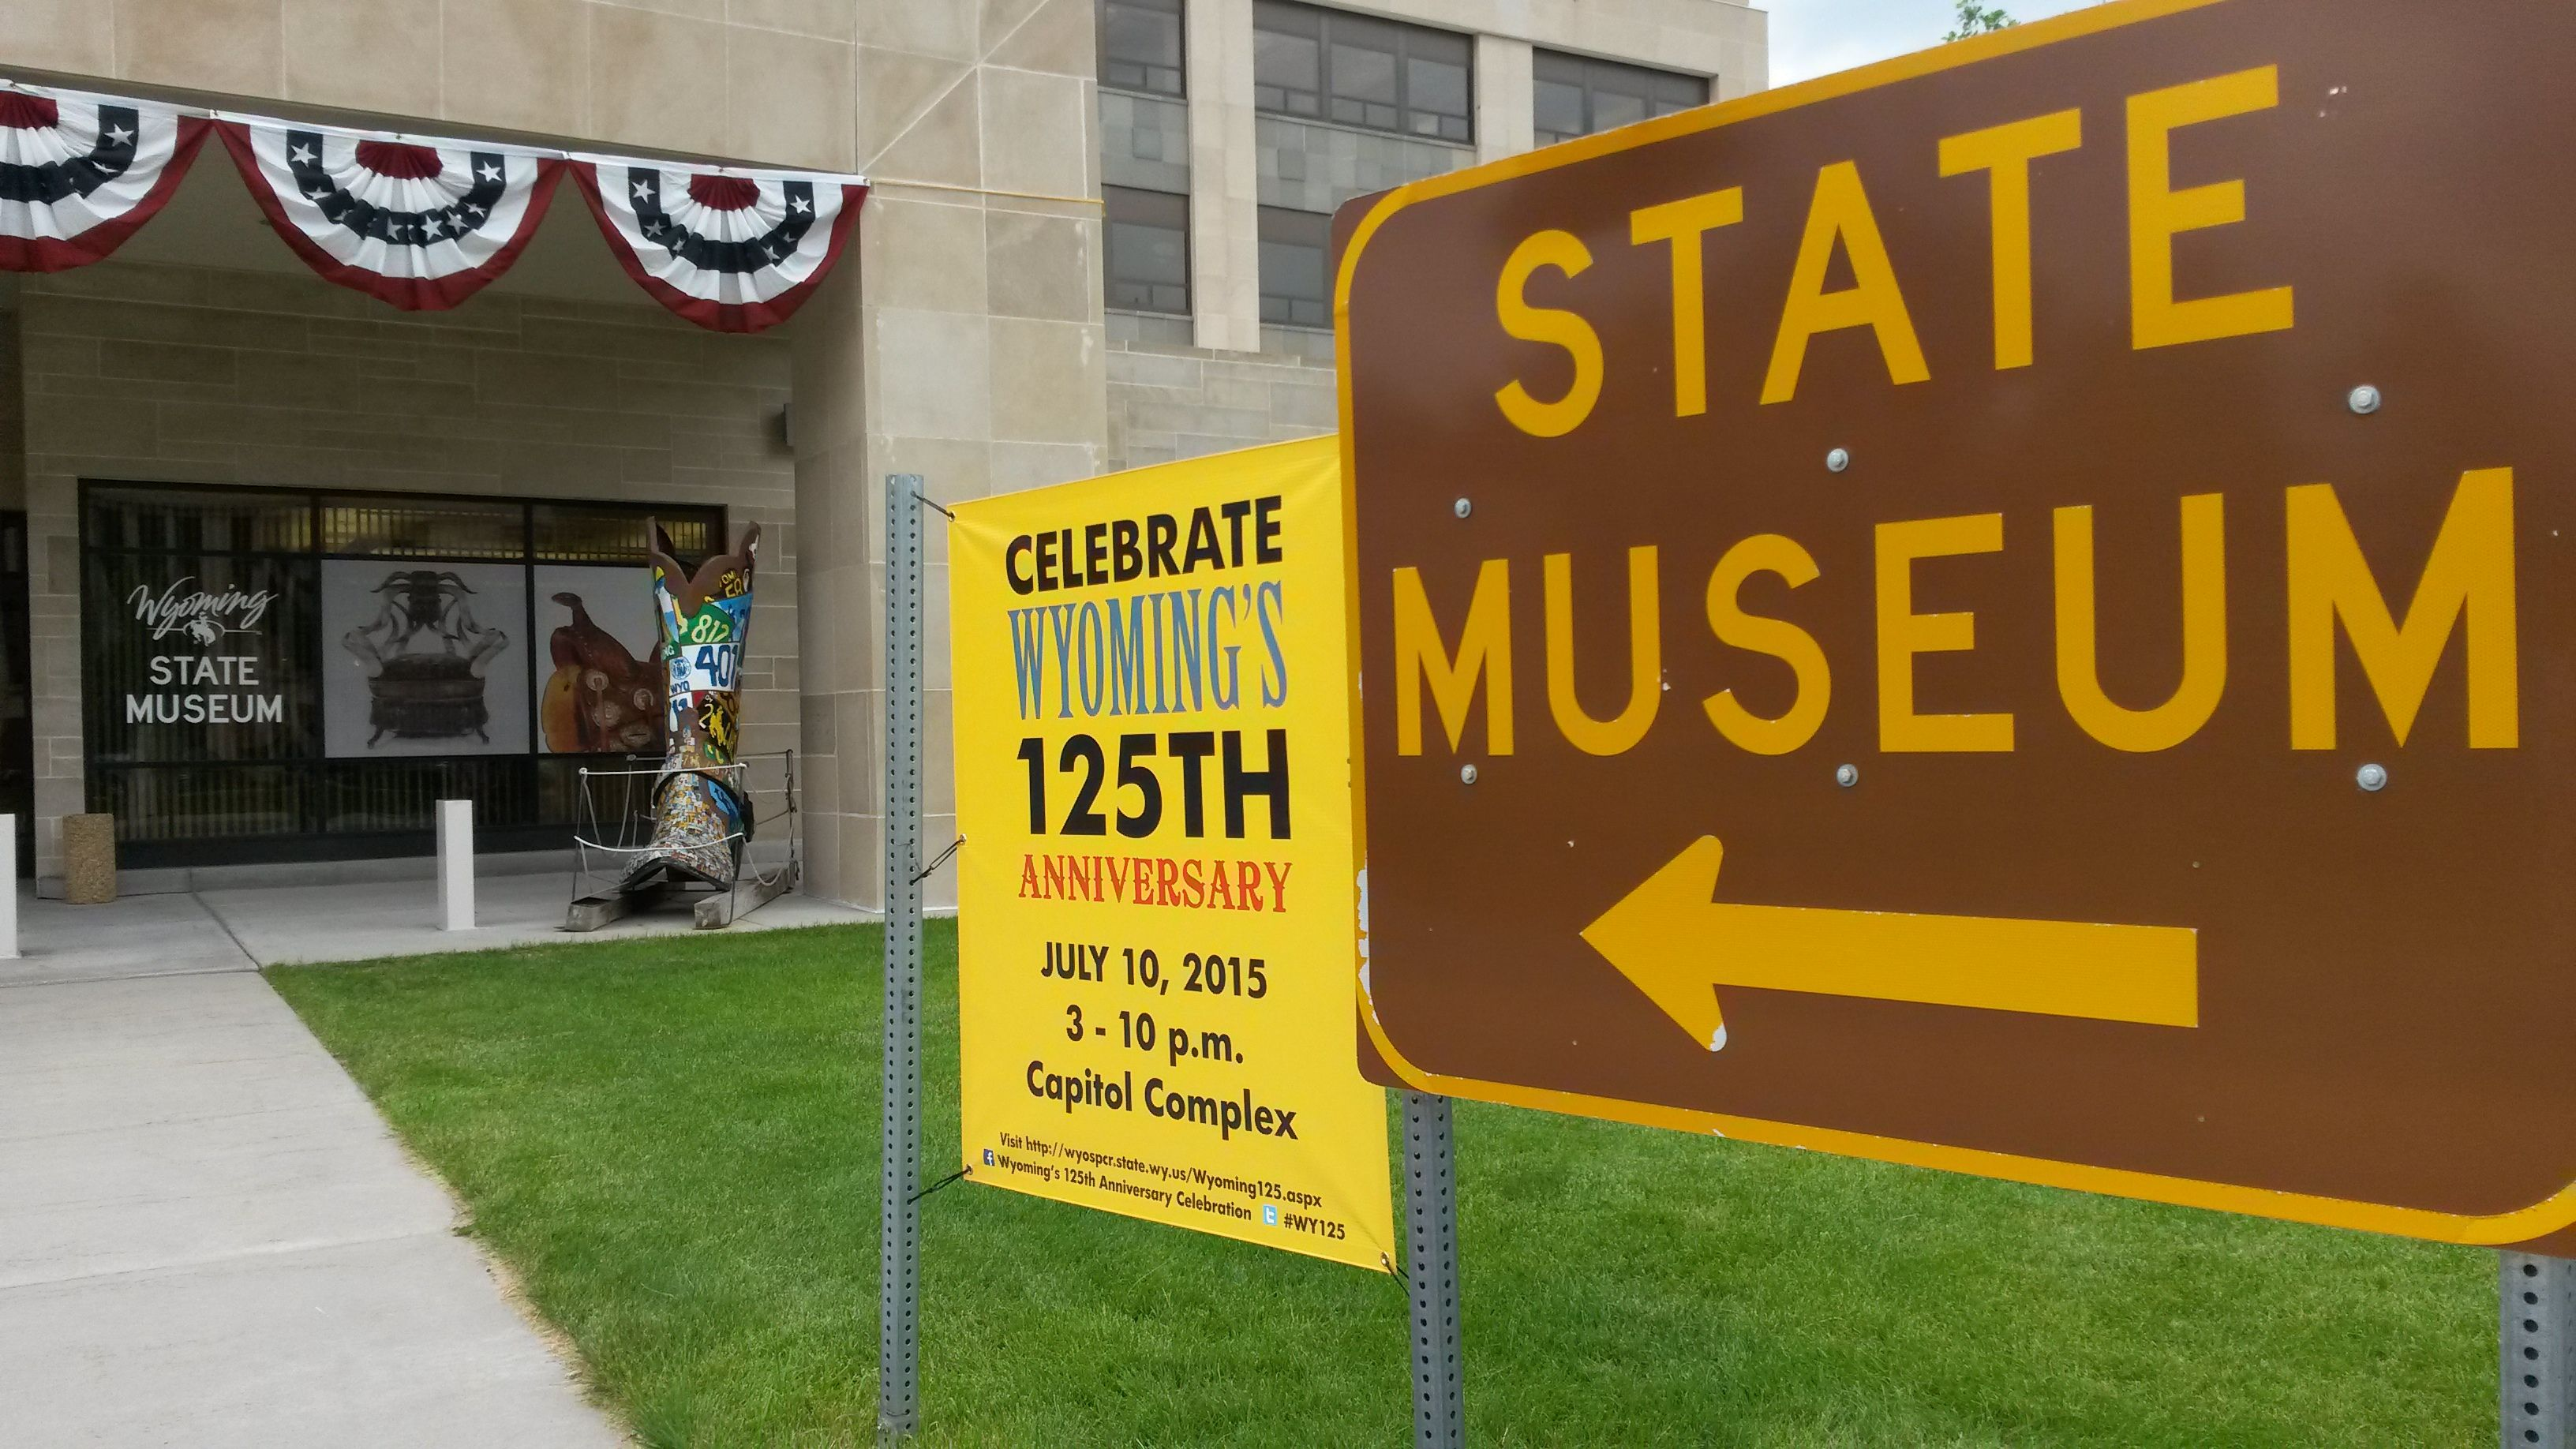 Come see us tomorrow during Wyoming's 125th Anniversary Celebration on July 10th! We have lots going on: 11 Wyoming authors signing books, our 125 Years of Statehood Exhibit, behind the scenes tours of the collections area, Hands on Wyoming History activities!